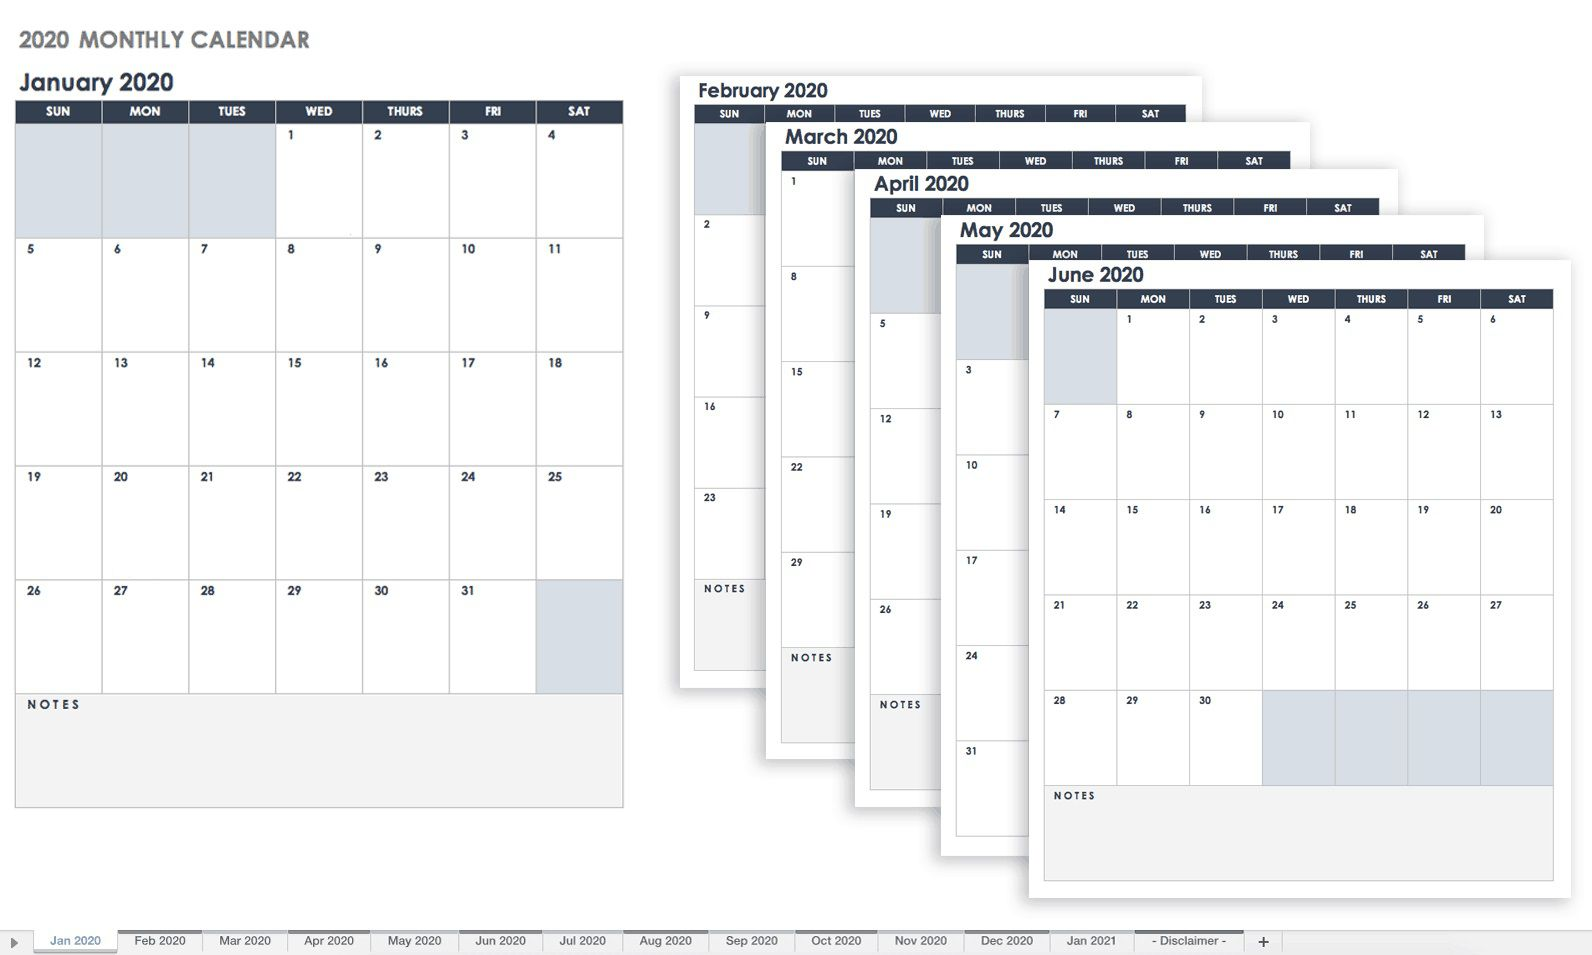 009 Impressive Free Calendar Template Excel Highest Clarity  Monthly 2020 Perpetual 2019Full